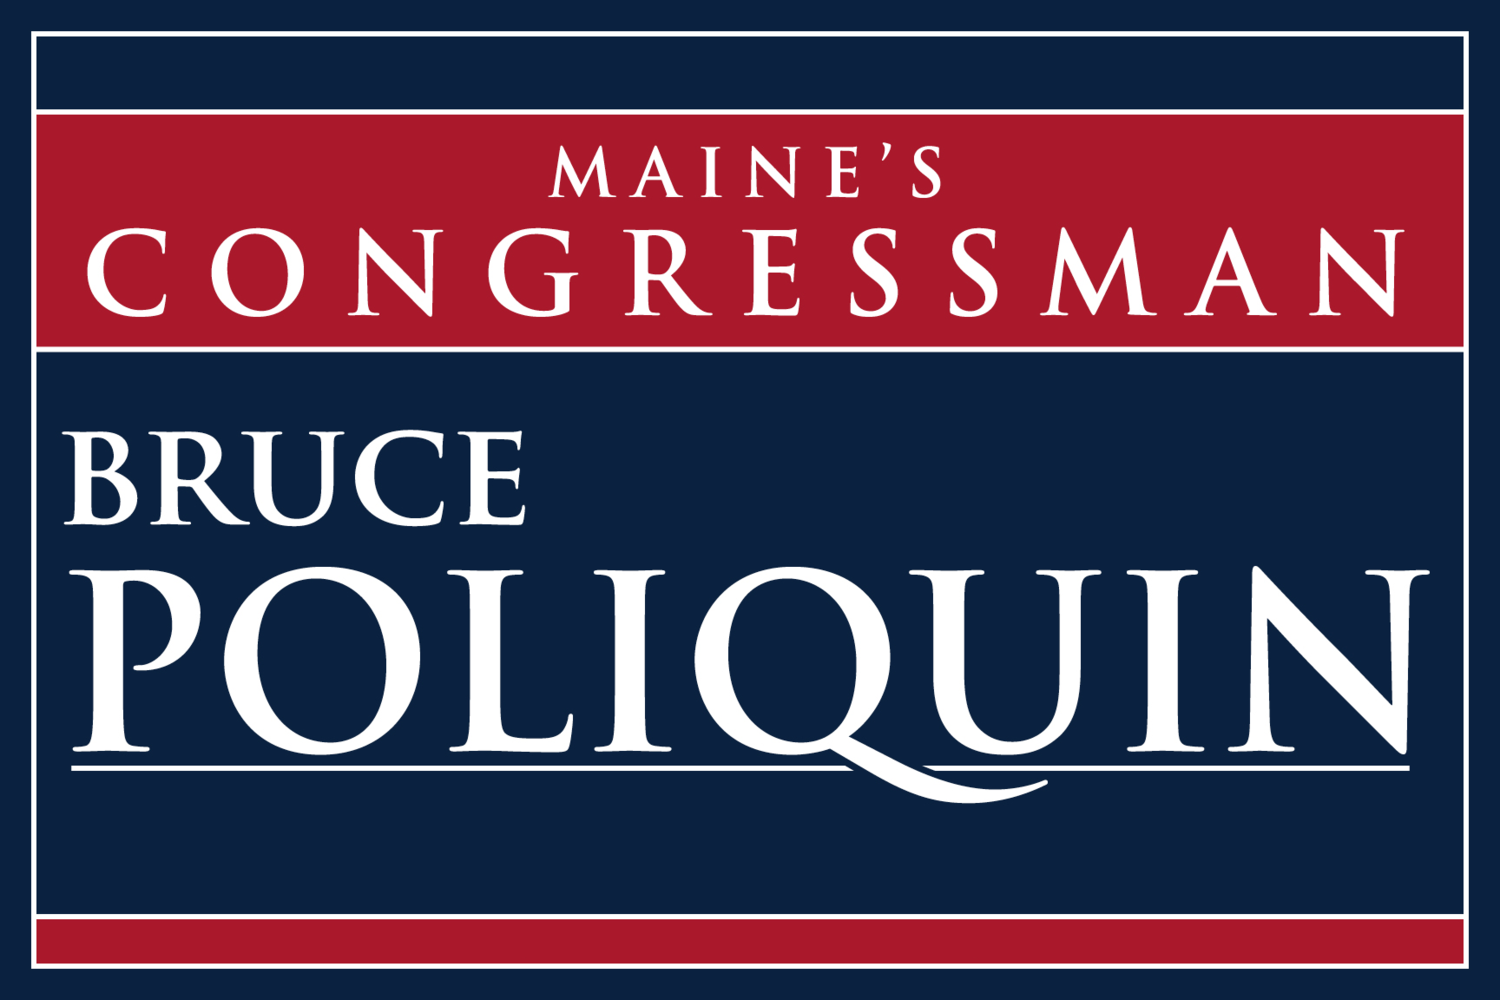 Bruce Poliquin for Congress